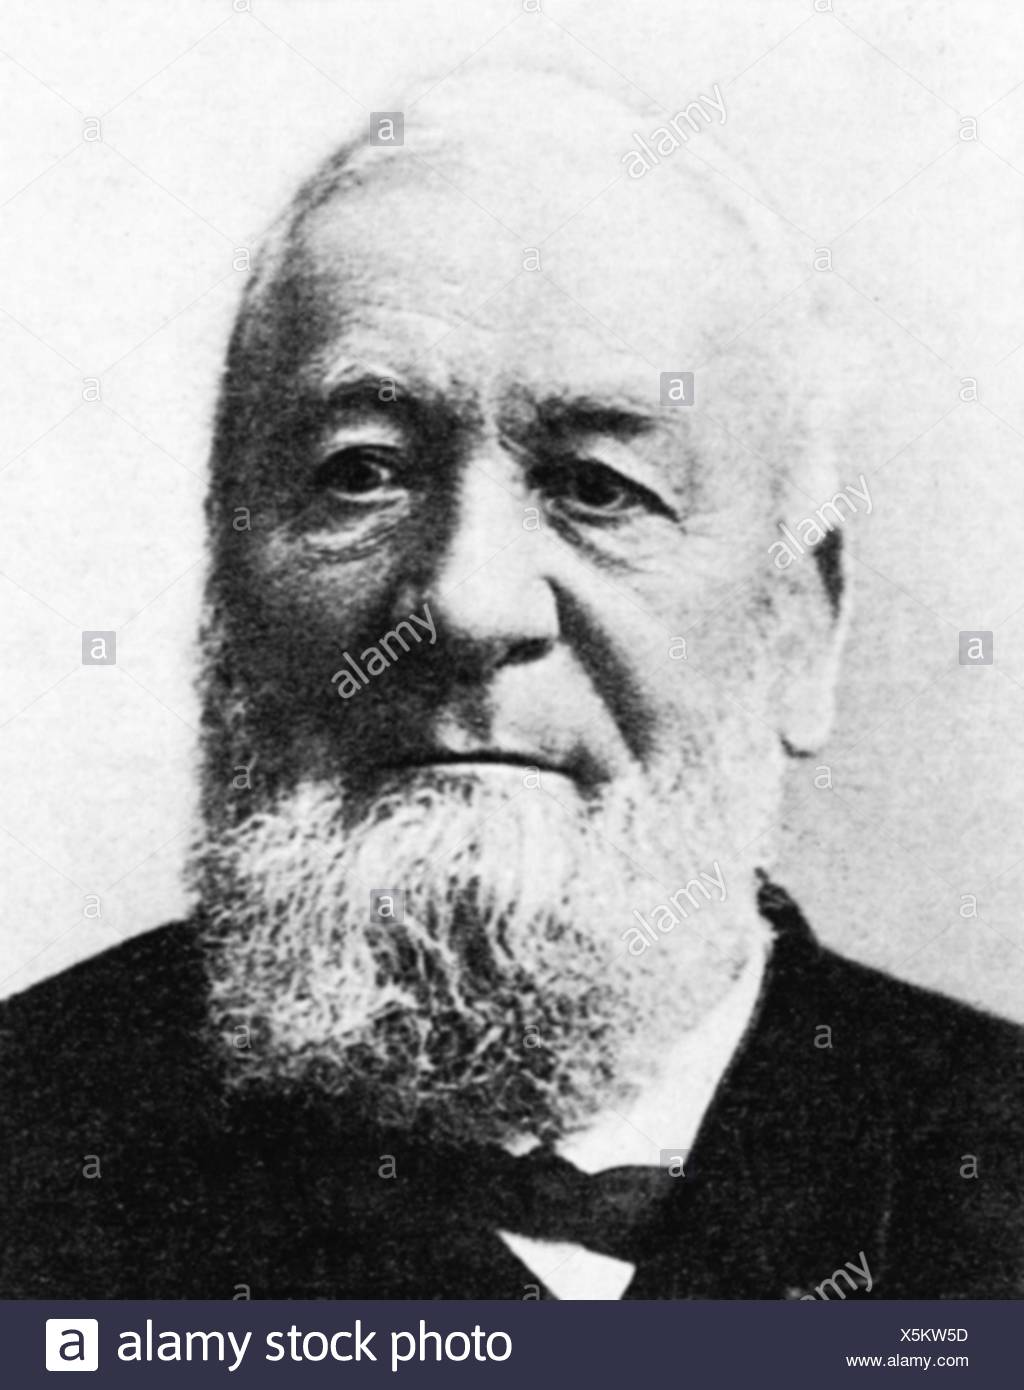 Niklaus Riggenbach, late 19th century - Stock Image